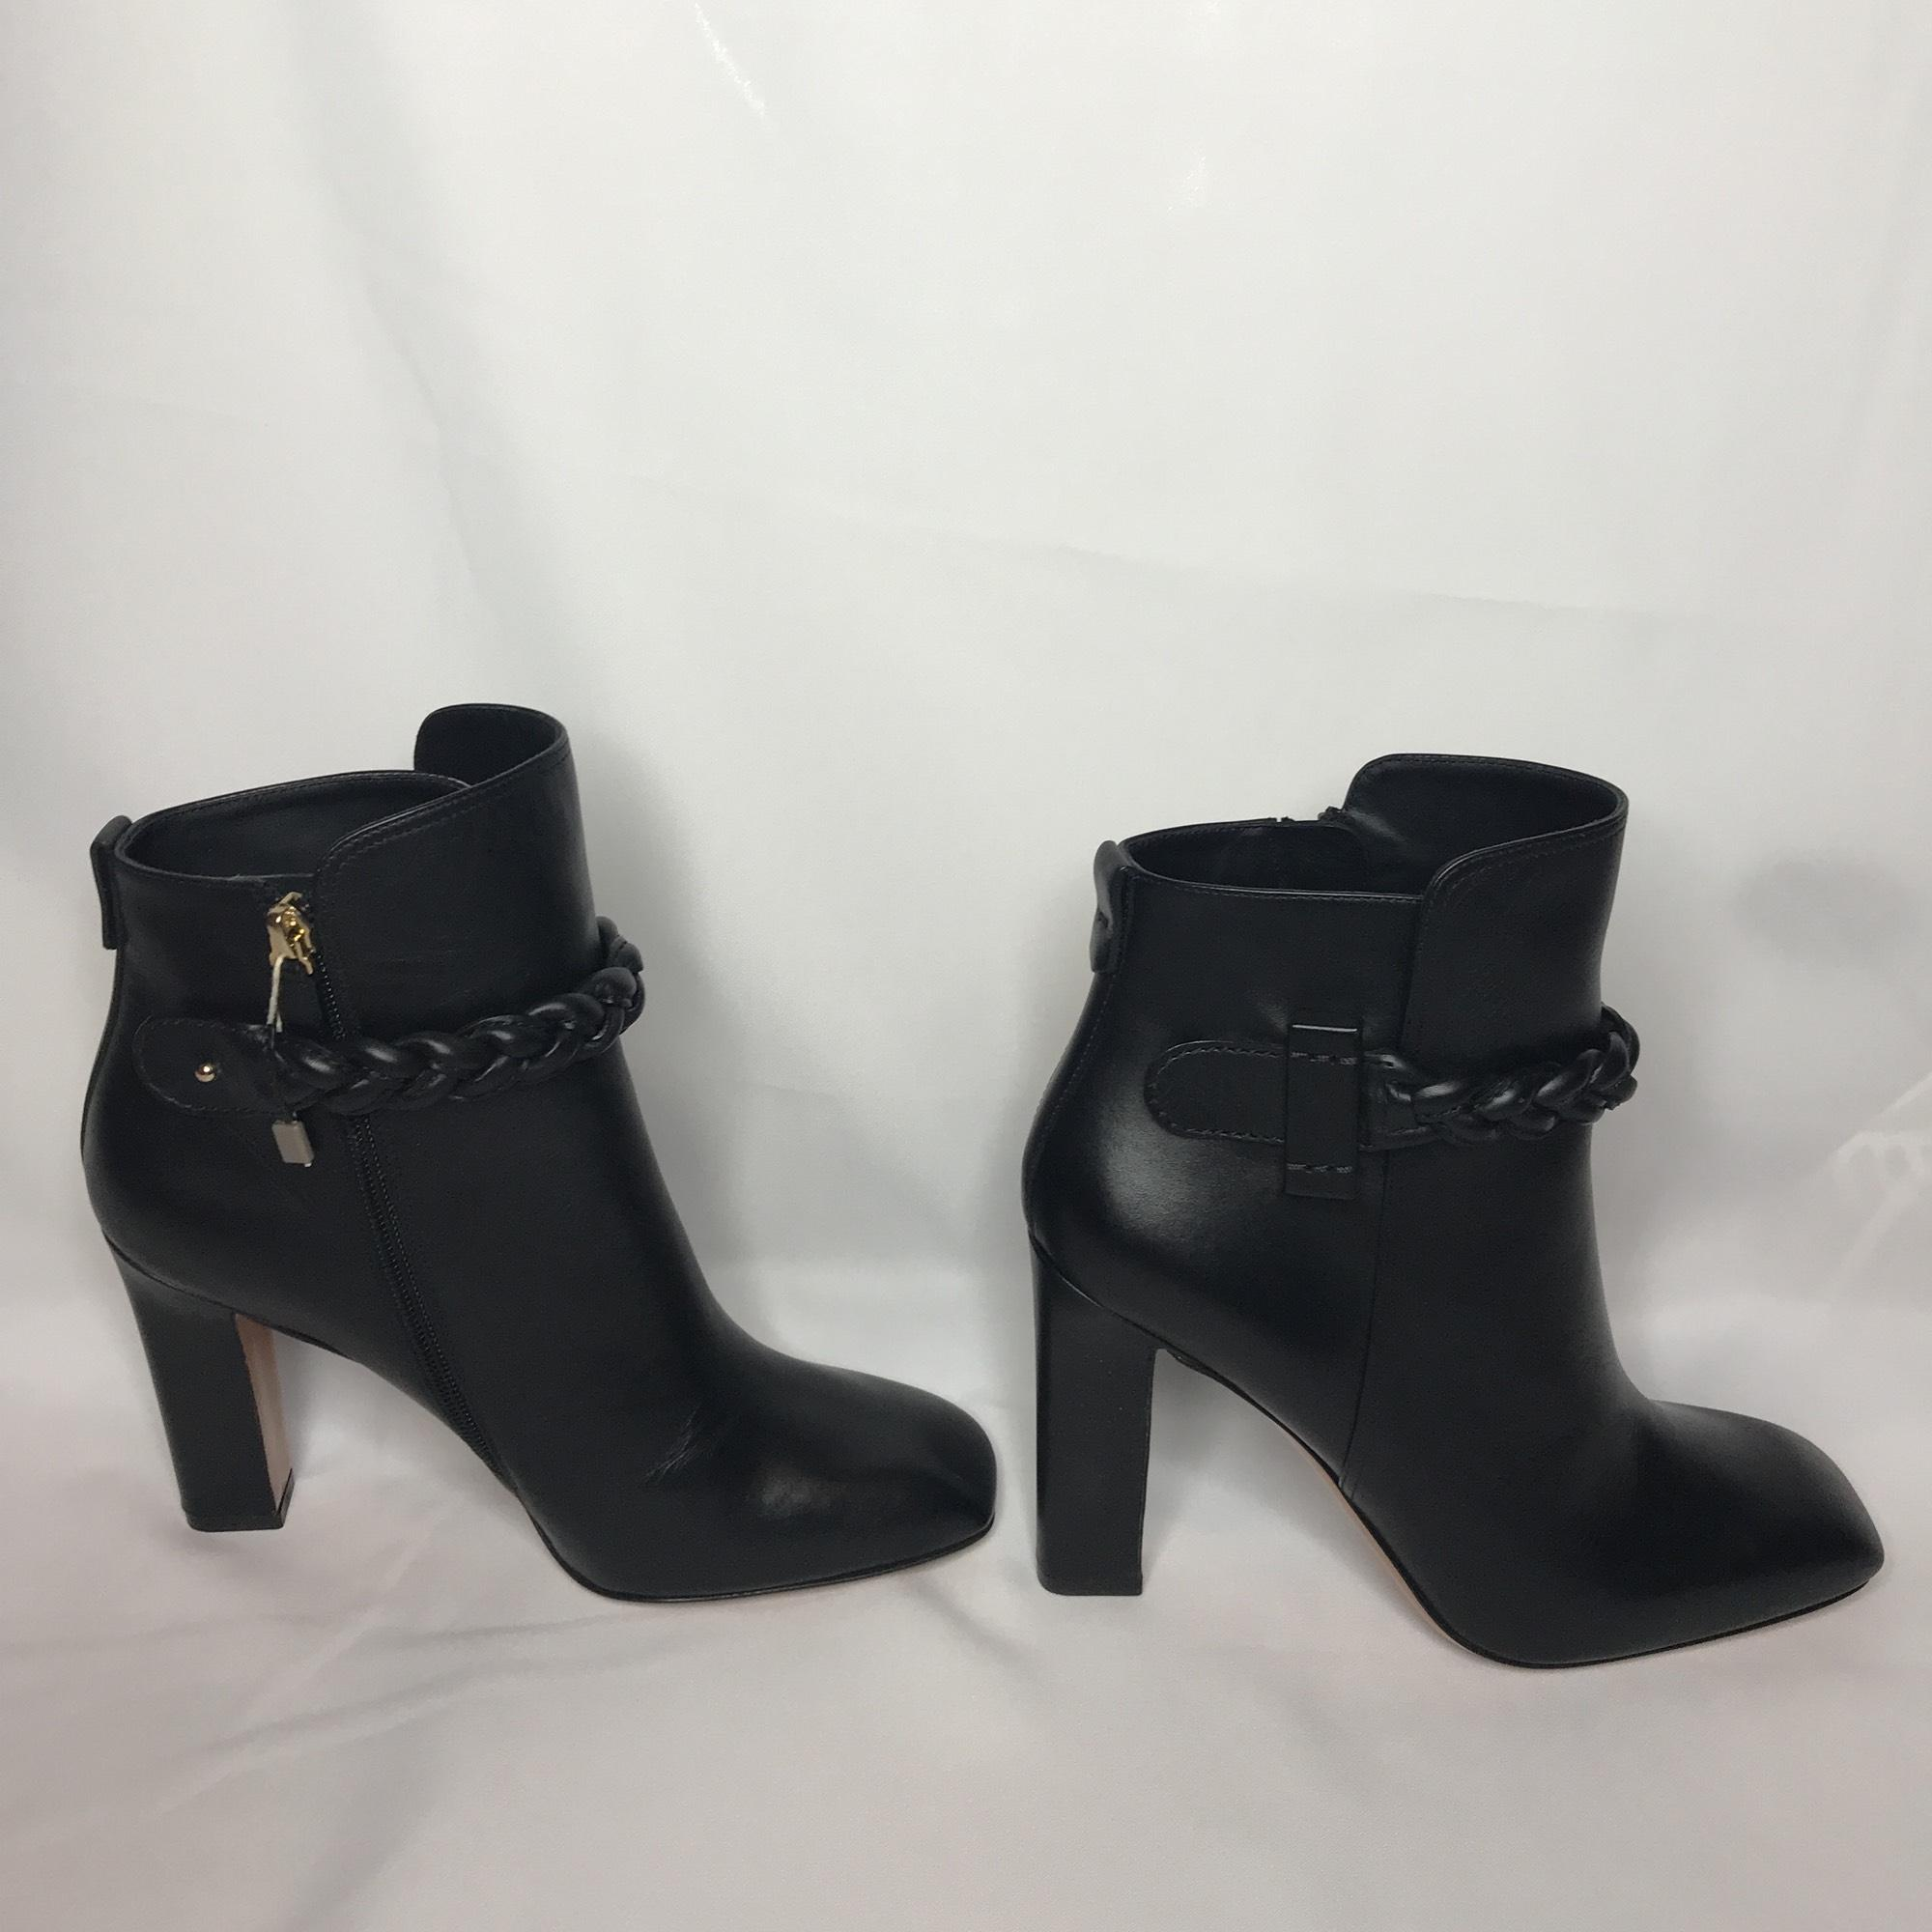 e8377dbe80fd US 10.5 Valentino Black New Boots Booties Size EU 40.5 40.5 40.5 (Approx.